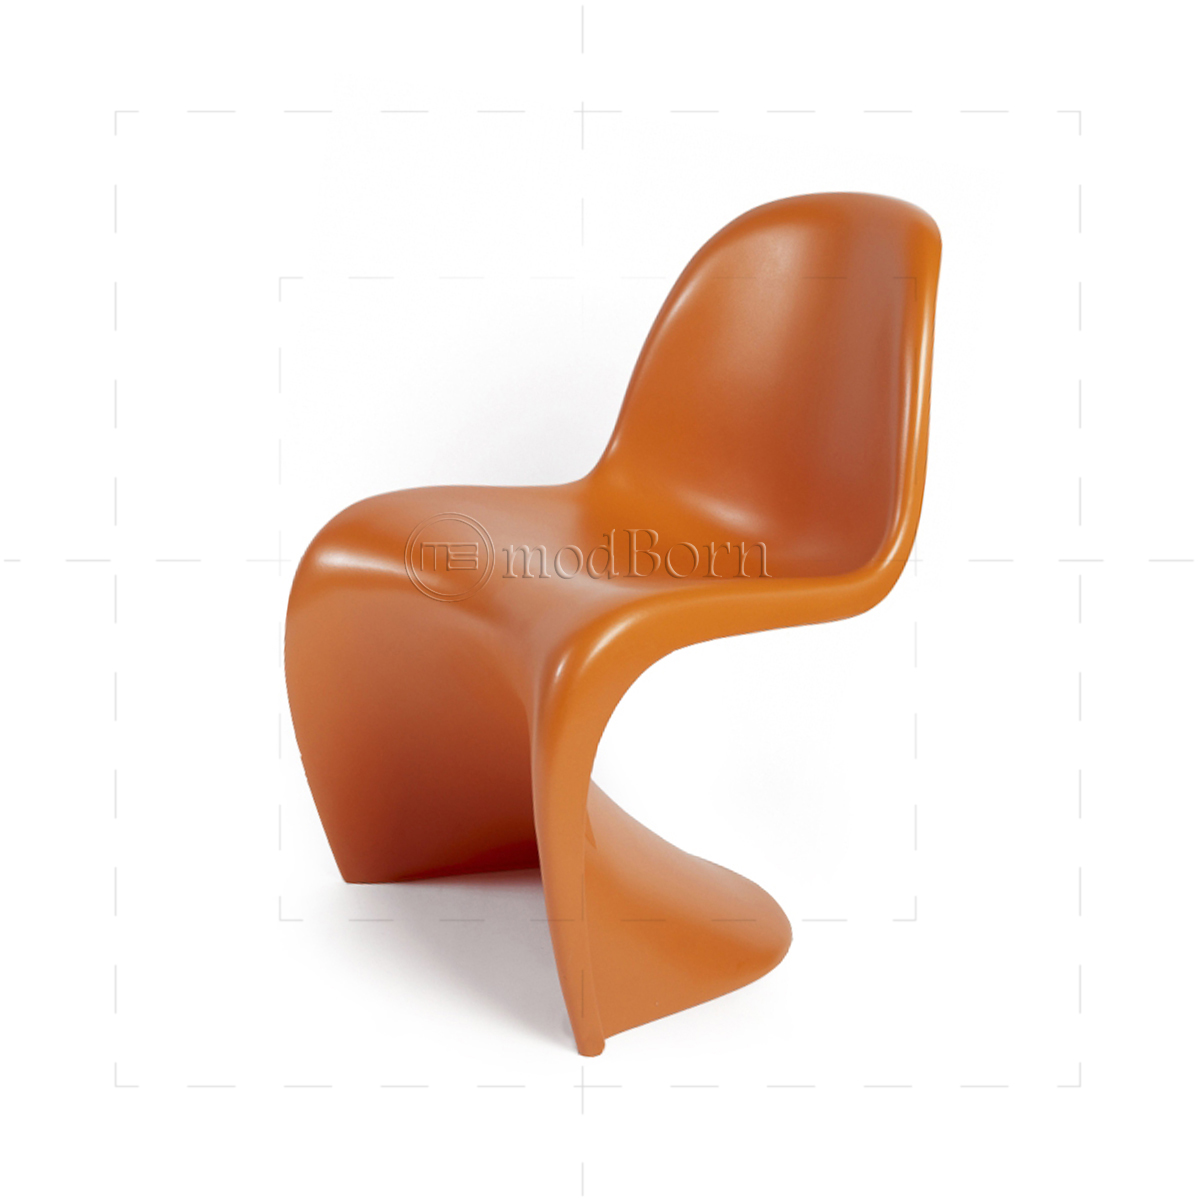 verner panton chair orange replica. Black Bedroom Furniture Sets. Home Design Ideas